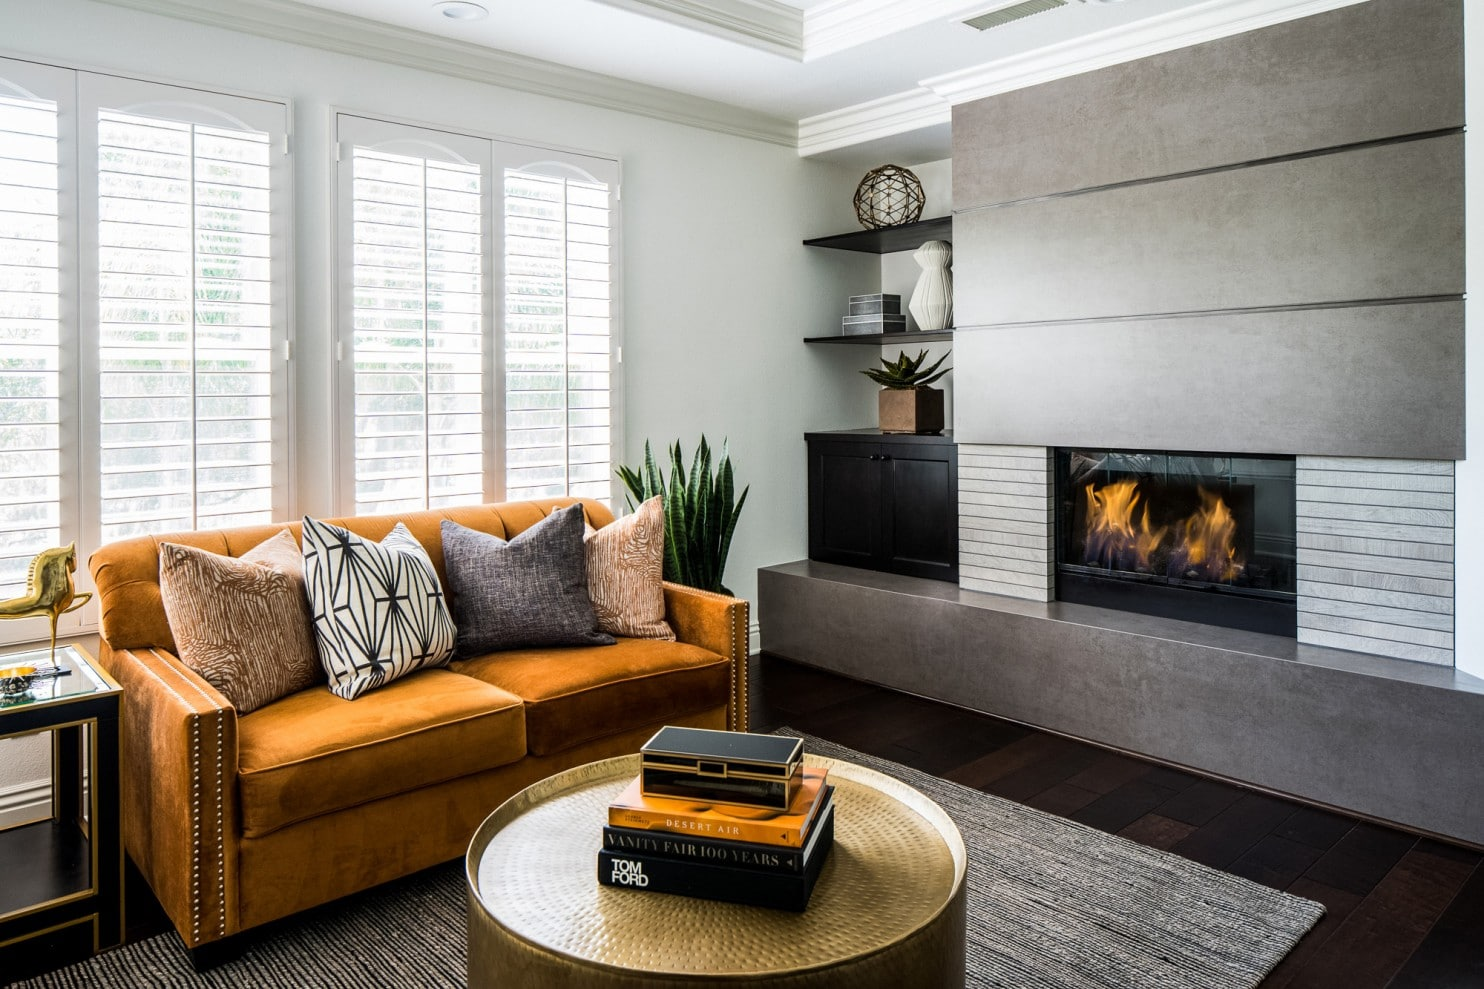 Image of warm, earth tones in living room